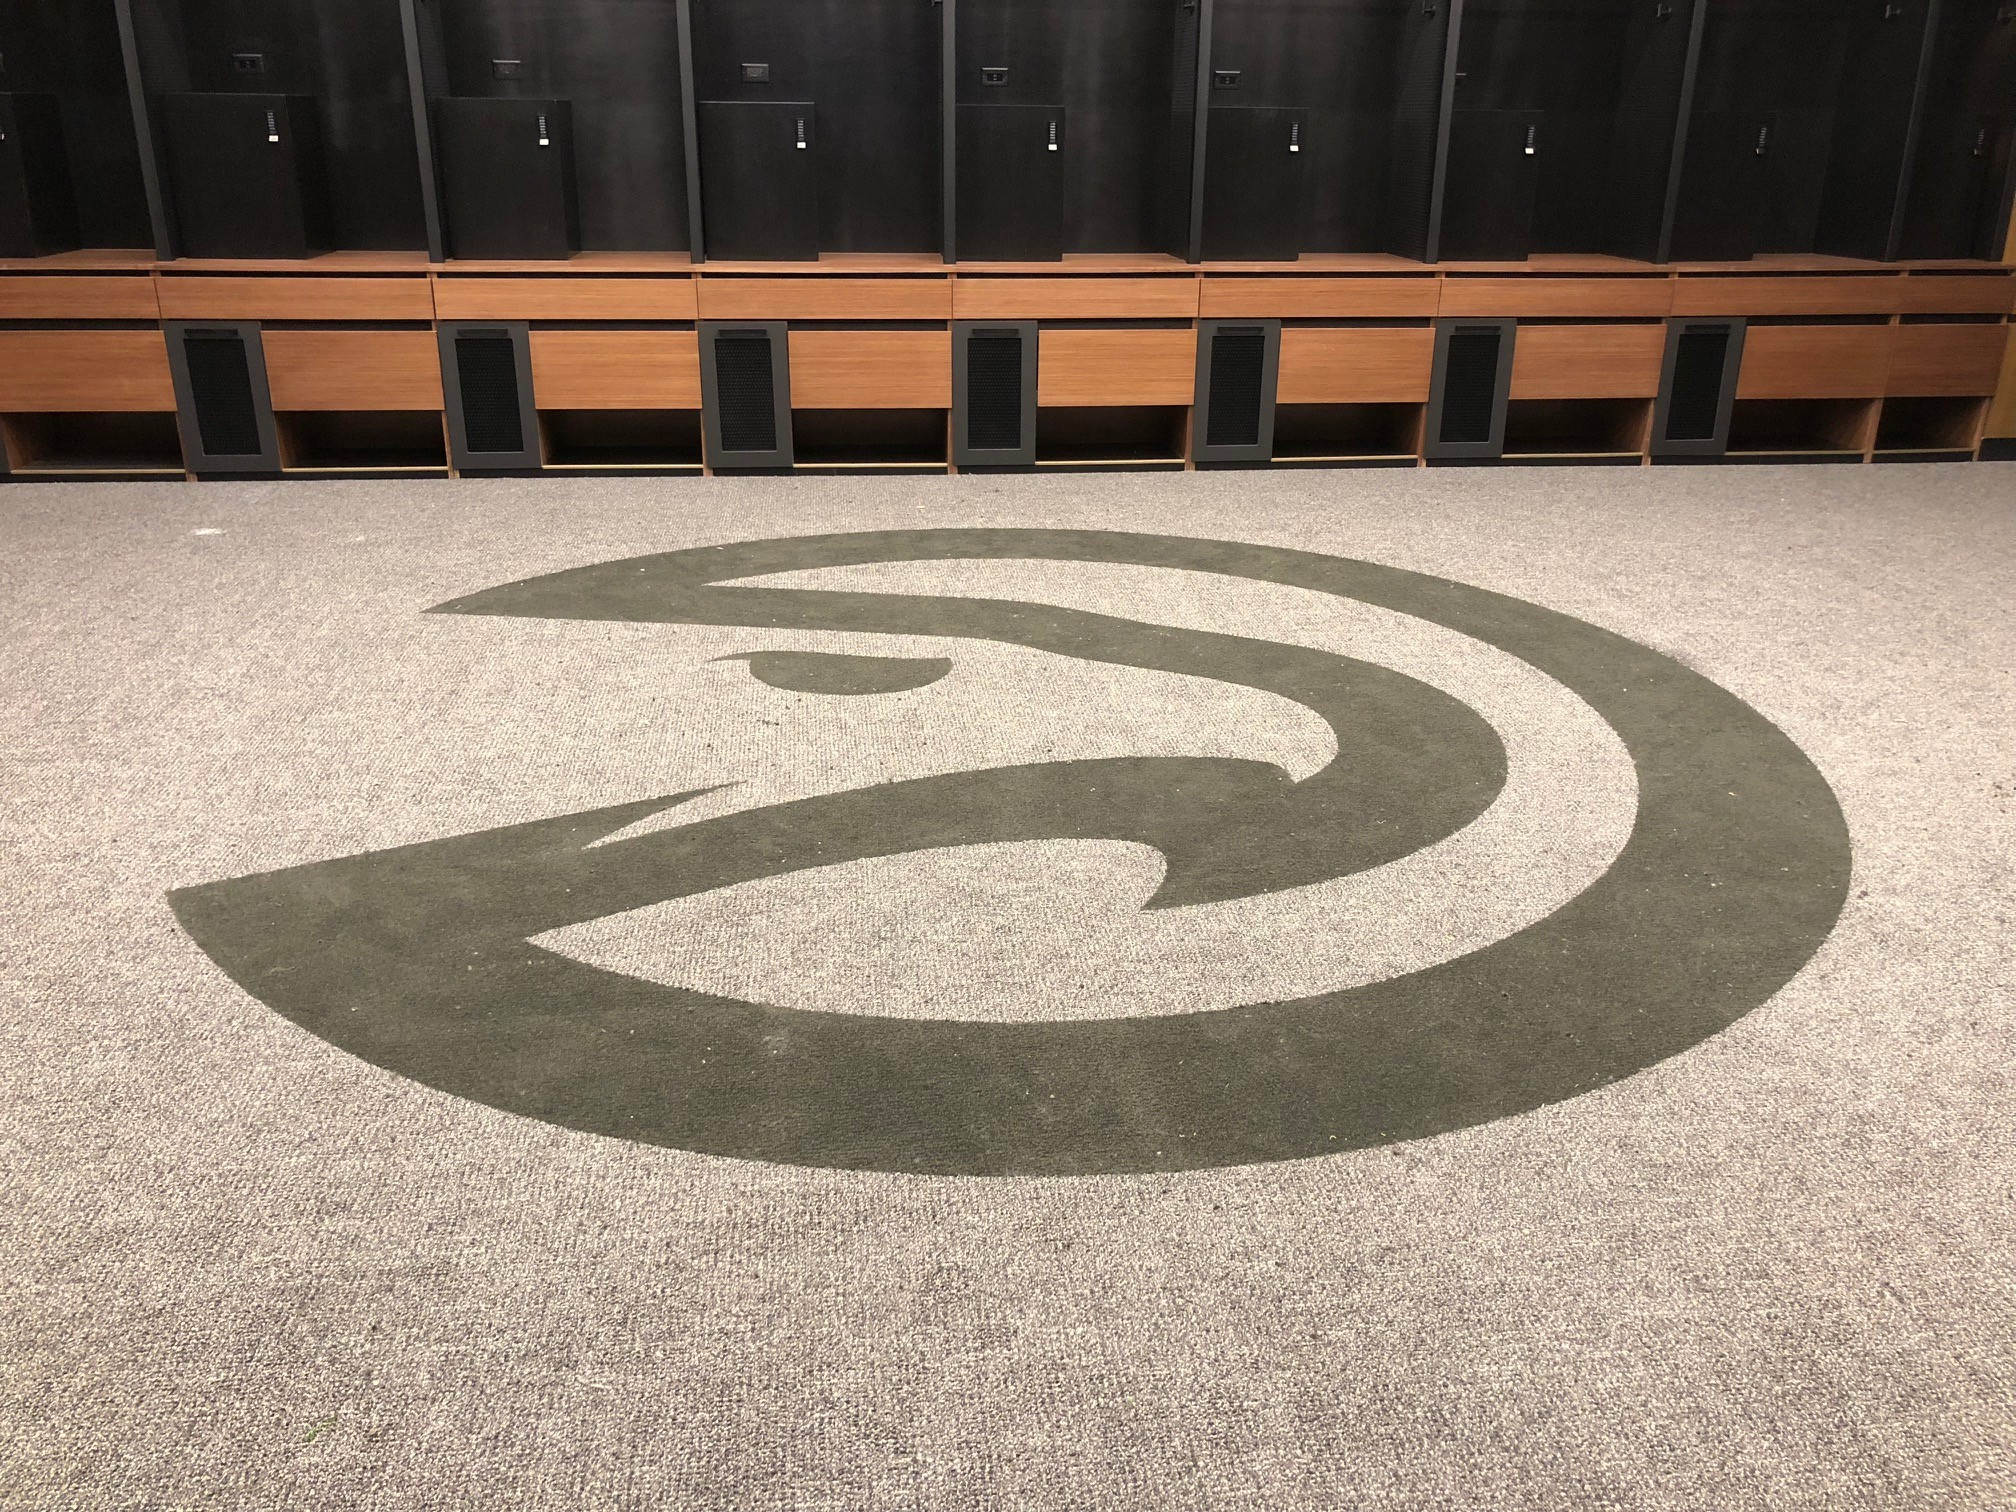 Atlanta Hawks Locker Room Carpet Renovation